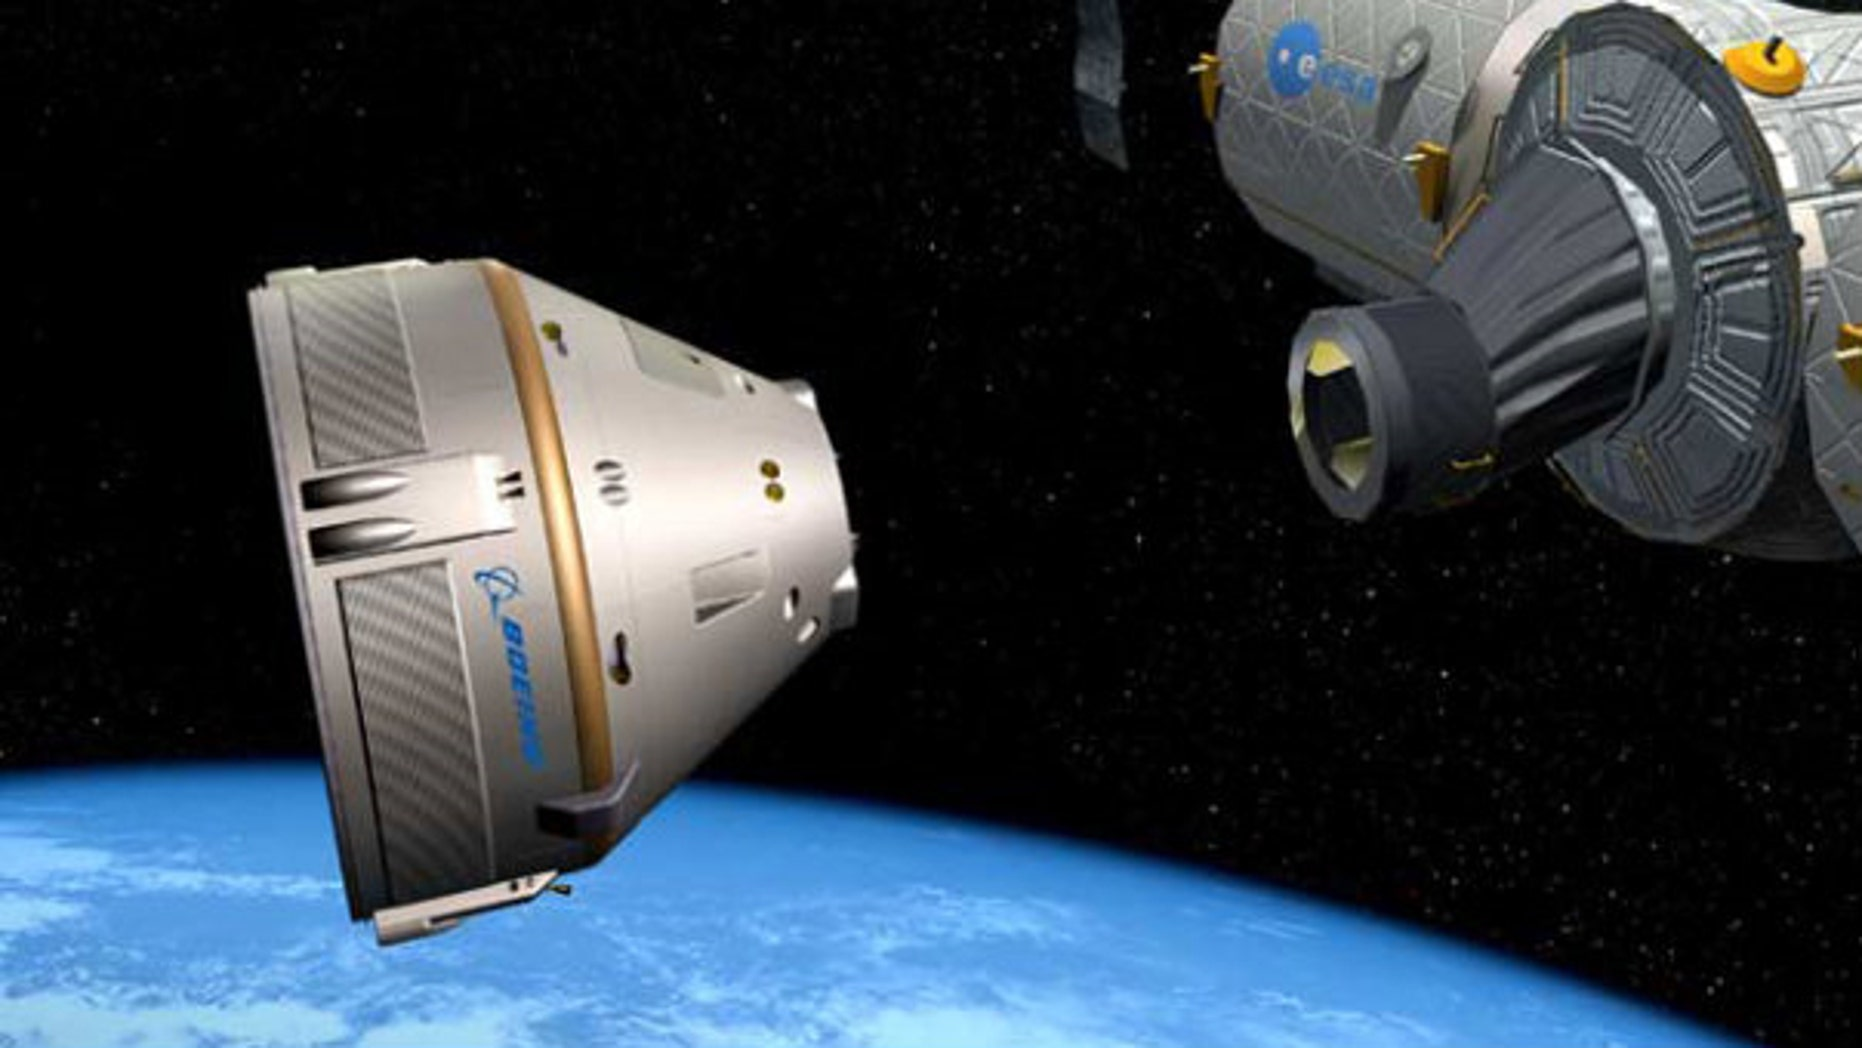 NASA could be supportive of commercial private spacecraft that transport clients into space such as this capsule designed by Boeing.